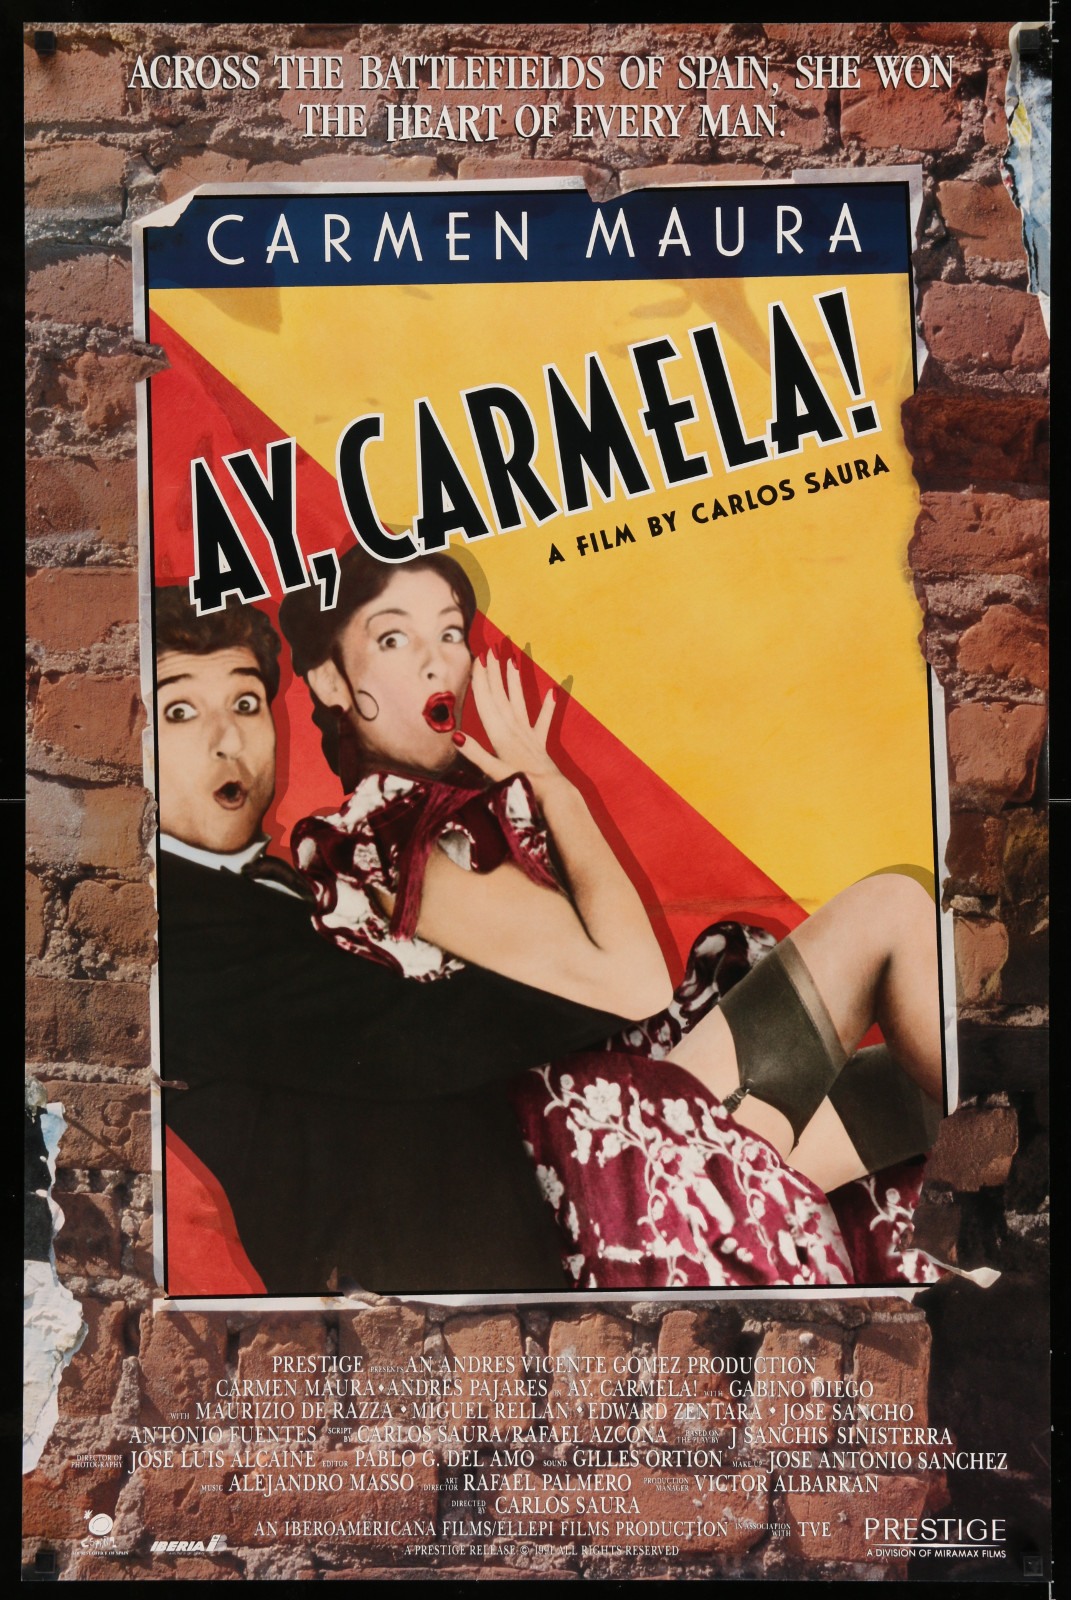 Ay, Carmela! 2A353 A Part Of A Lot 32 Unfolded Double-Sided And Single-Sided Mostly 27X40 One-Sheets '90S-00S Great Images